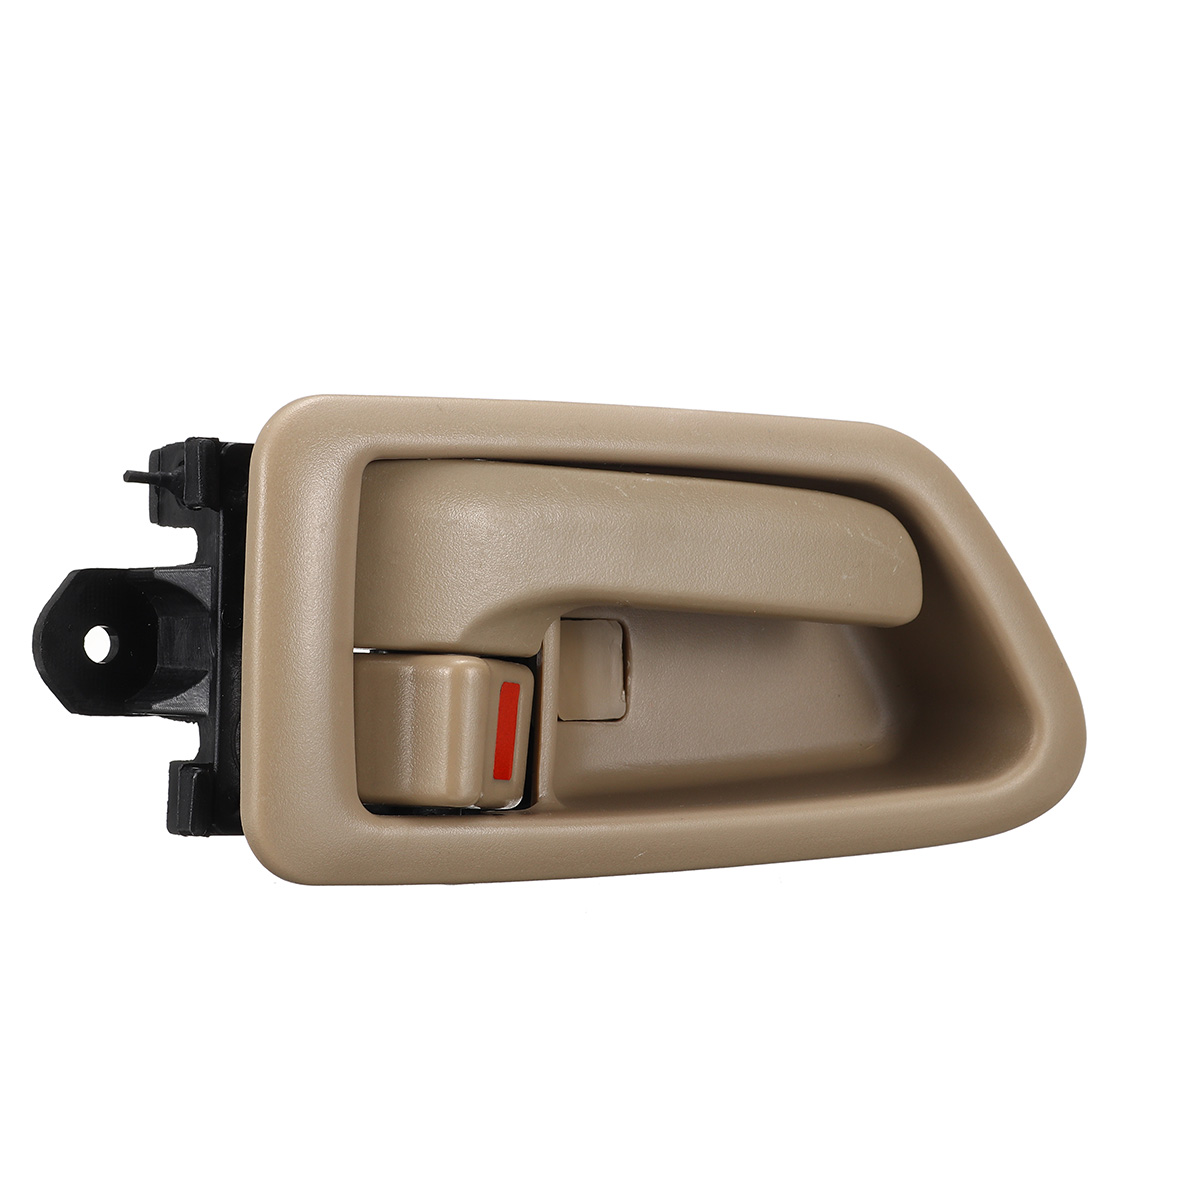 Car Door Handle for Toyota 1997-2001 Camry Inside Left & Right Set of 4